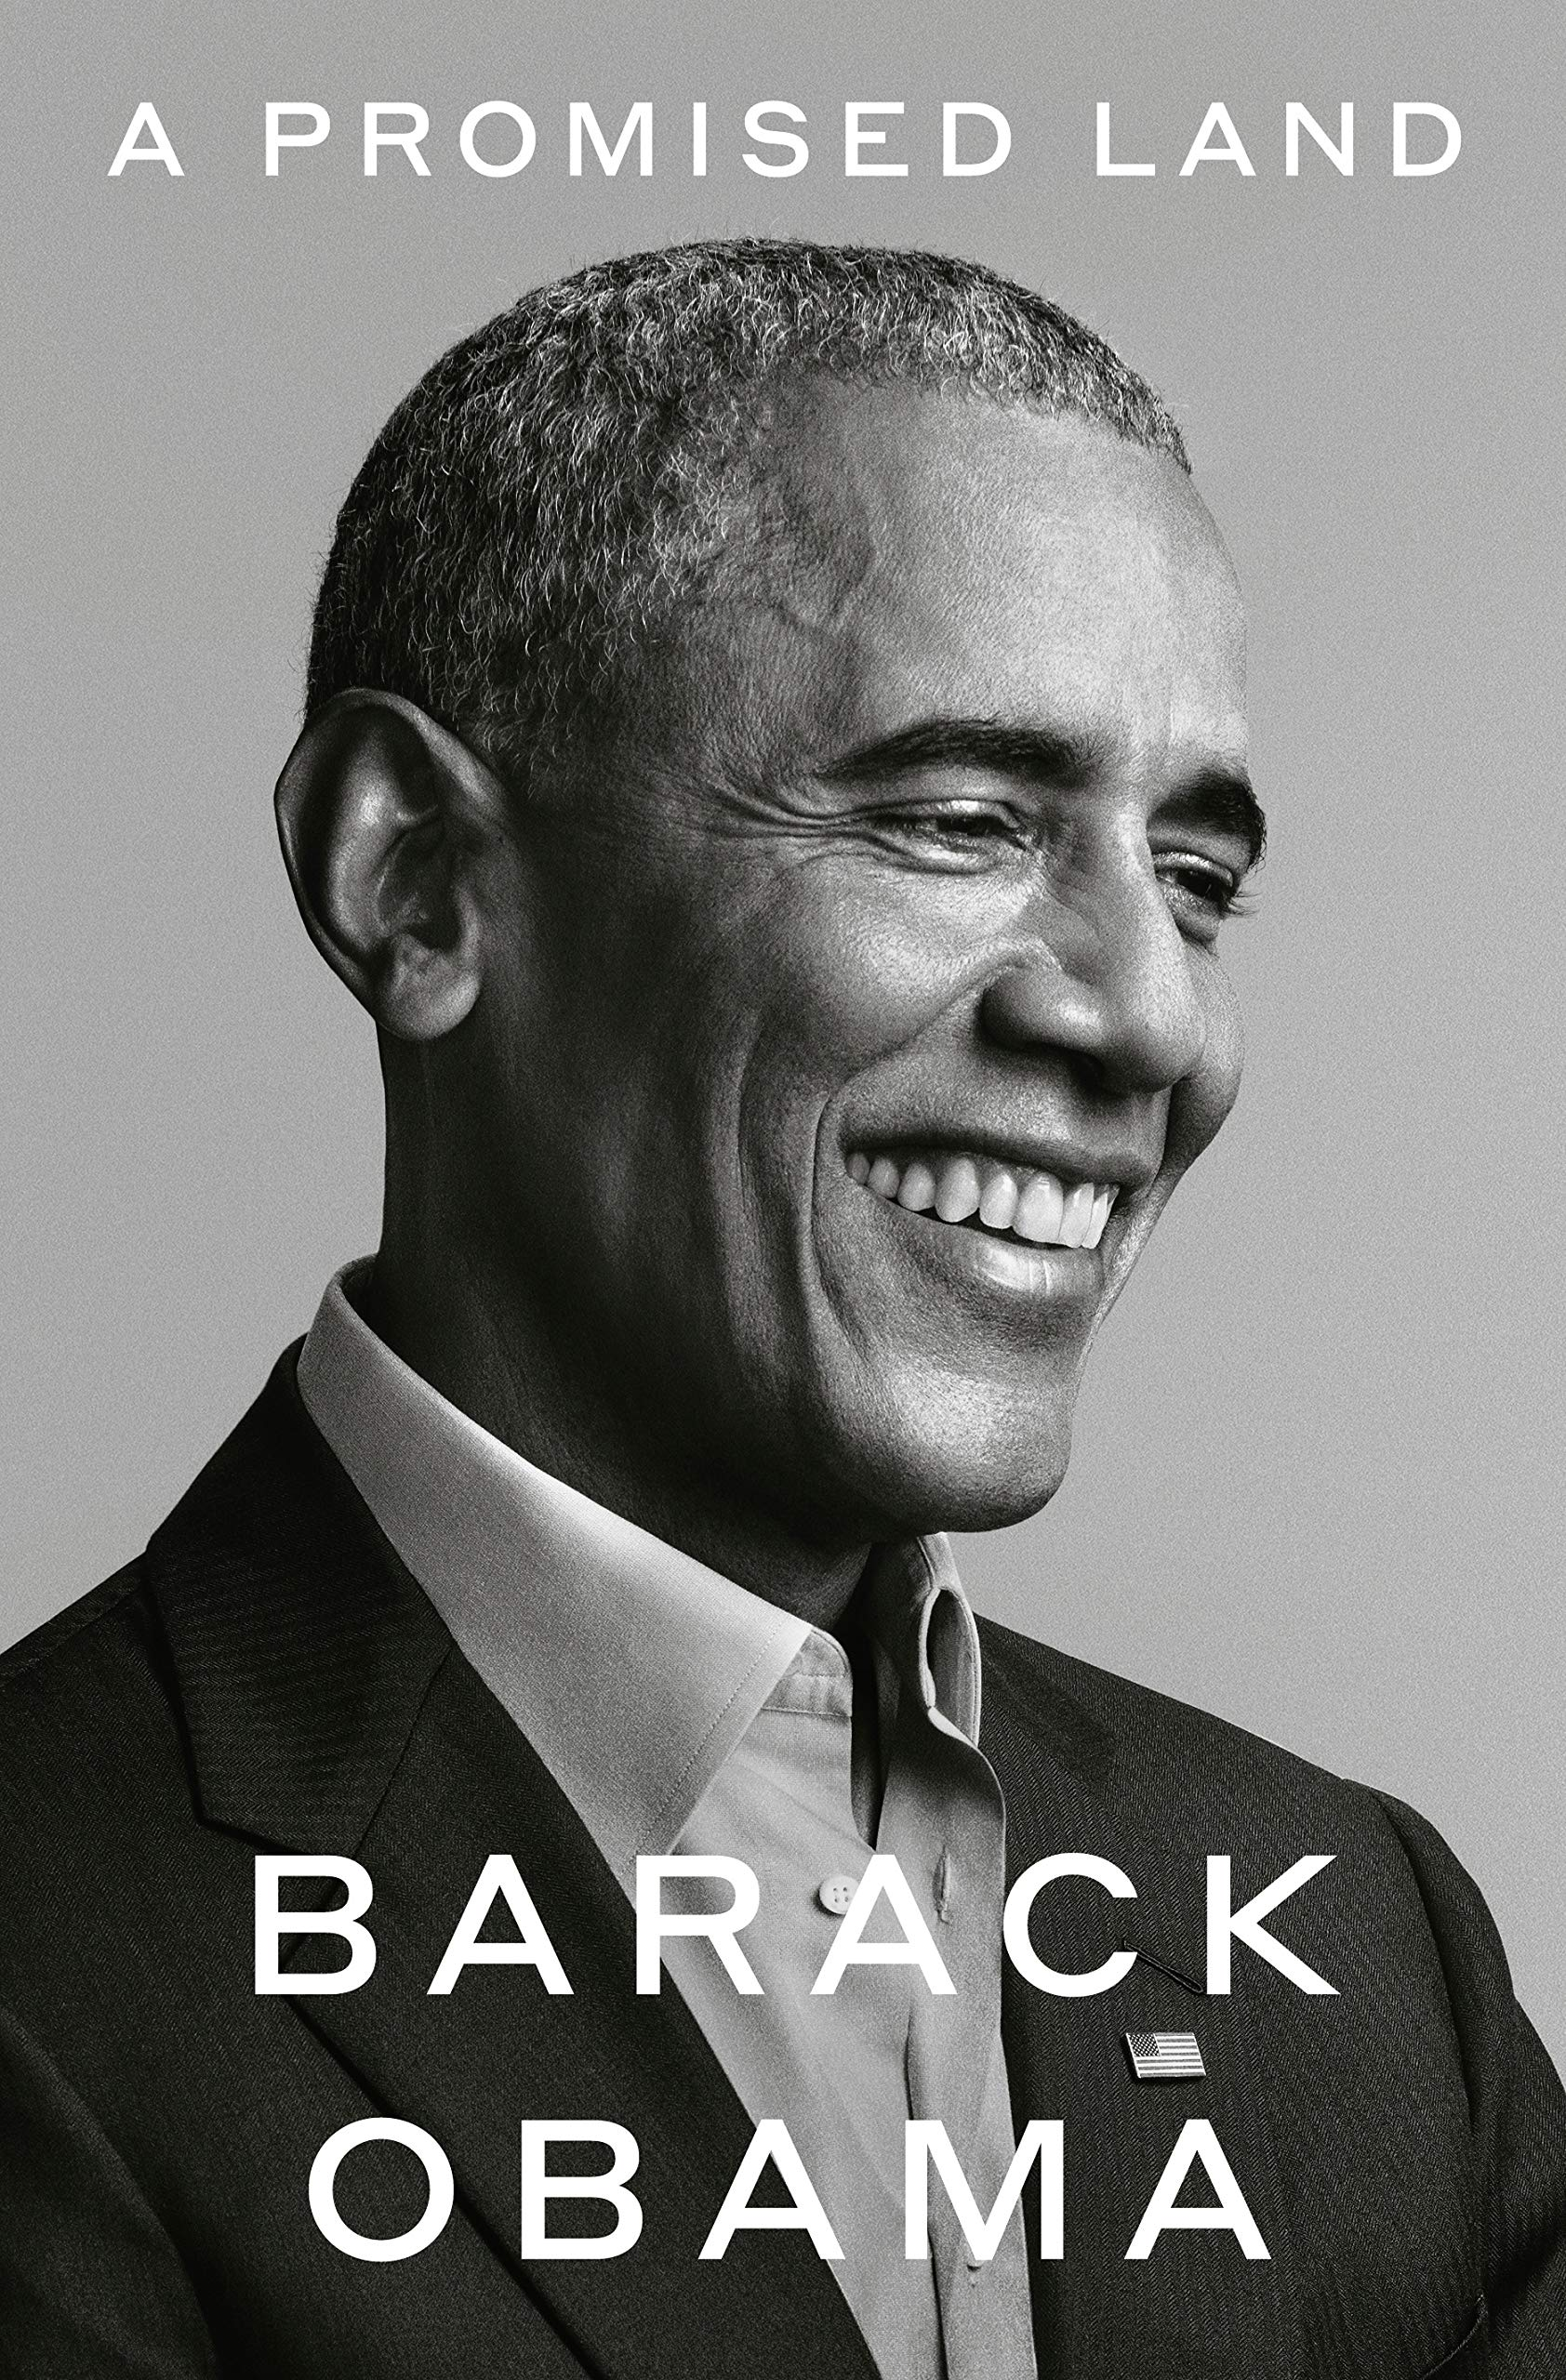 Cover image of A Promised Land by Barack Obama